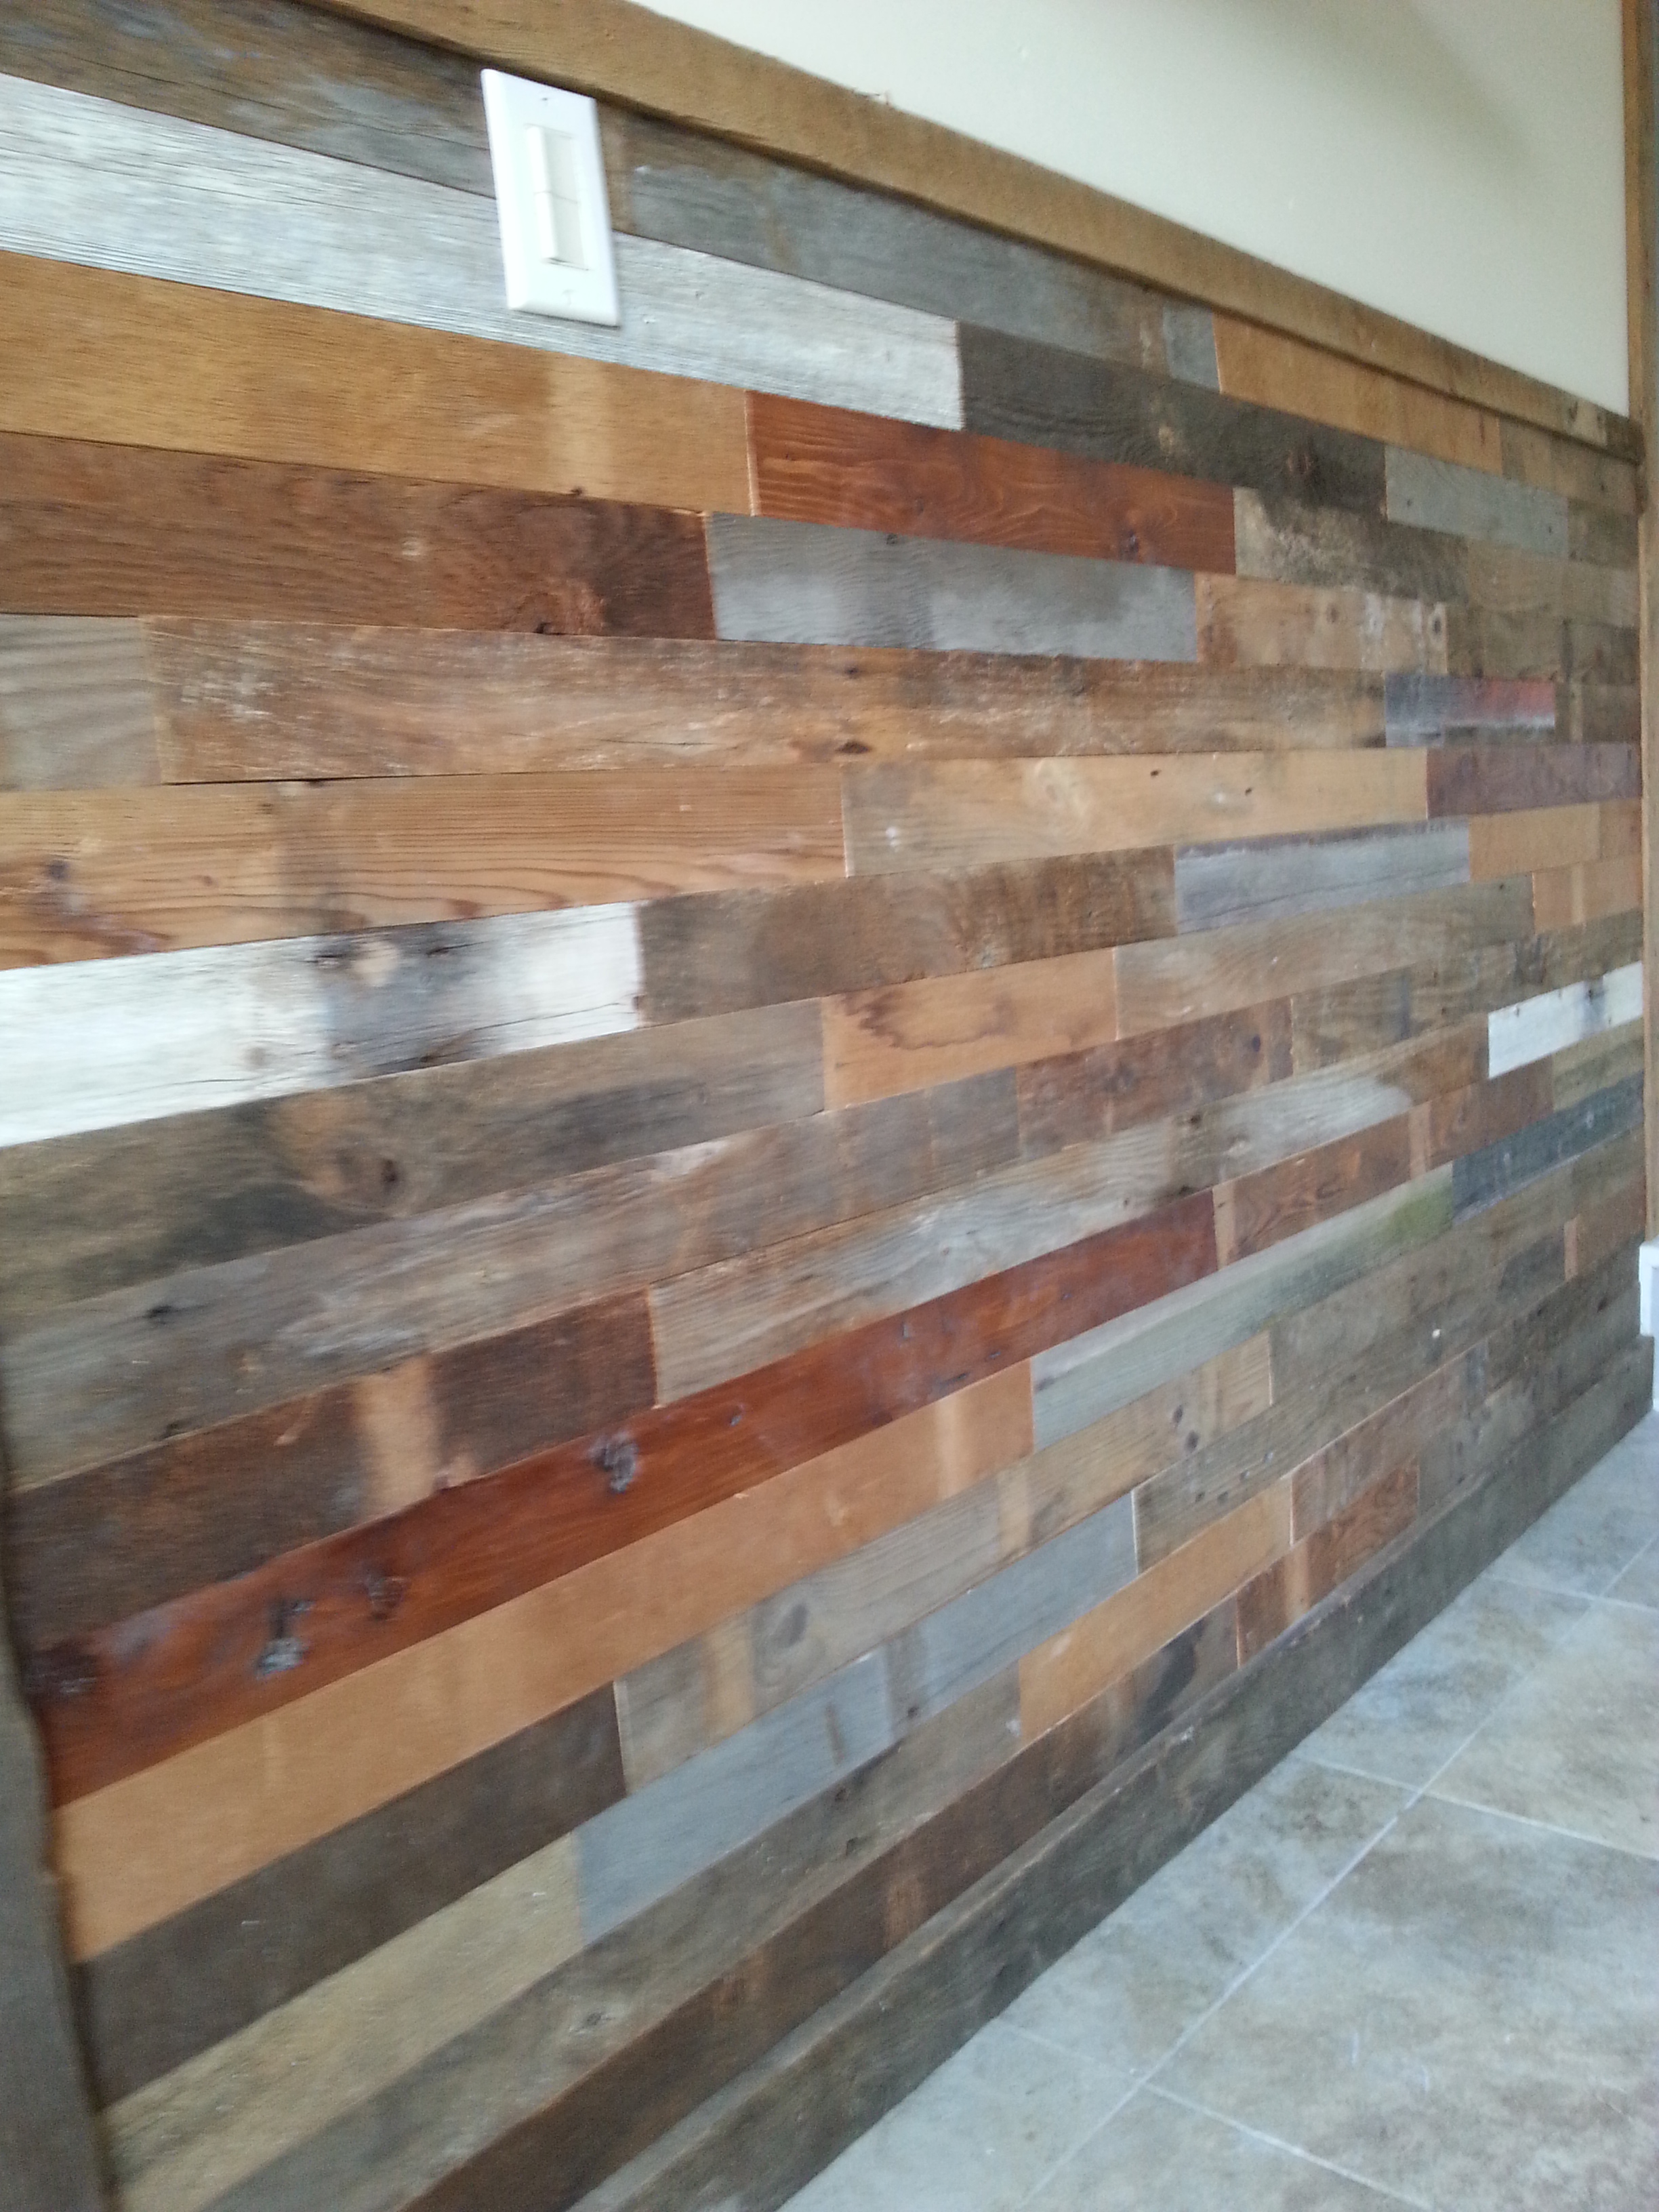 Wall Boards Barn Planks Reclaimed Wood Boards Easy Peel And Stick Installation For Walls Ceilings And Home Decor Barnwood Designs